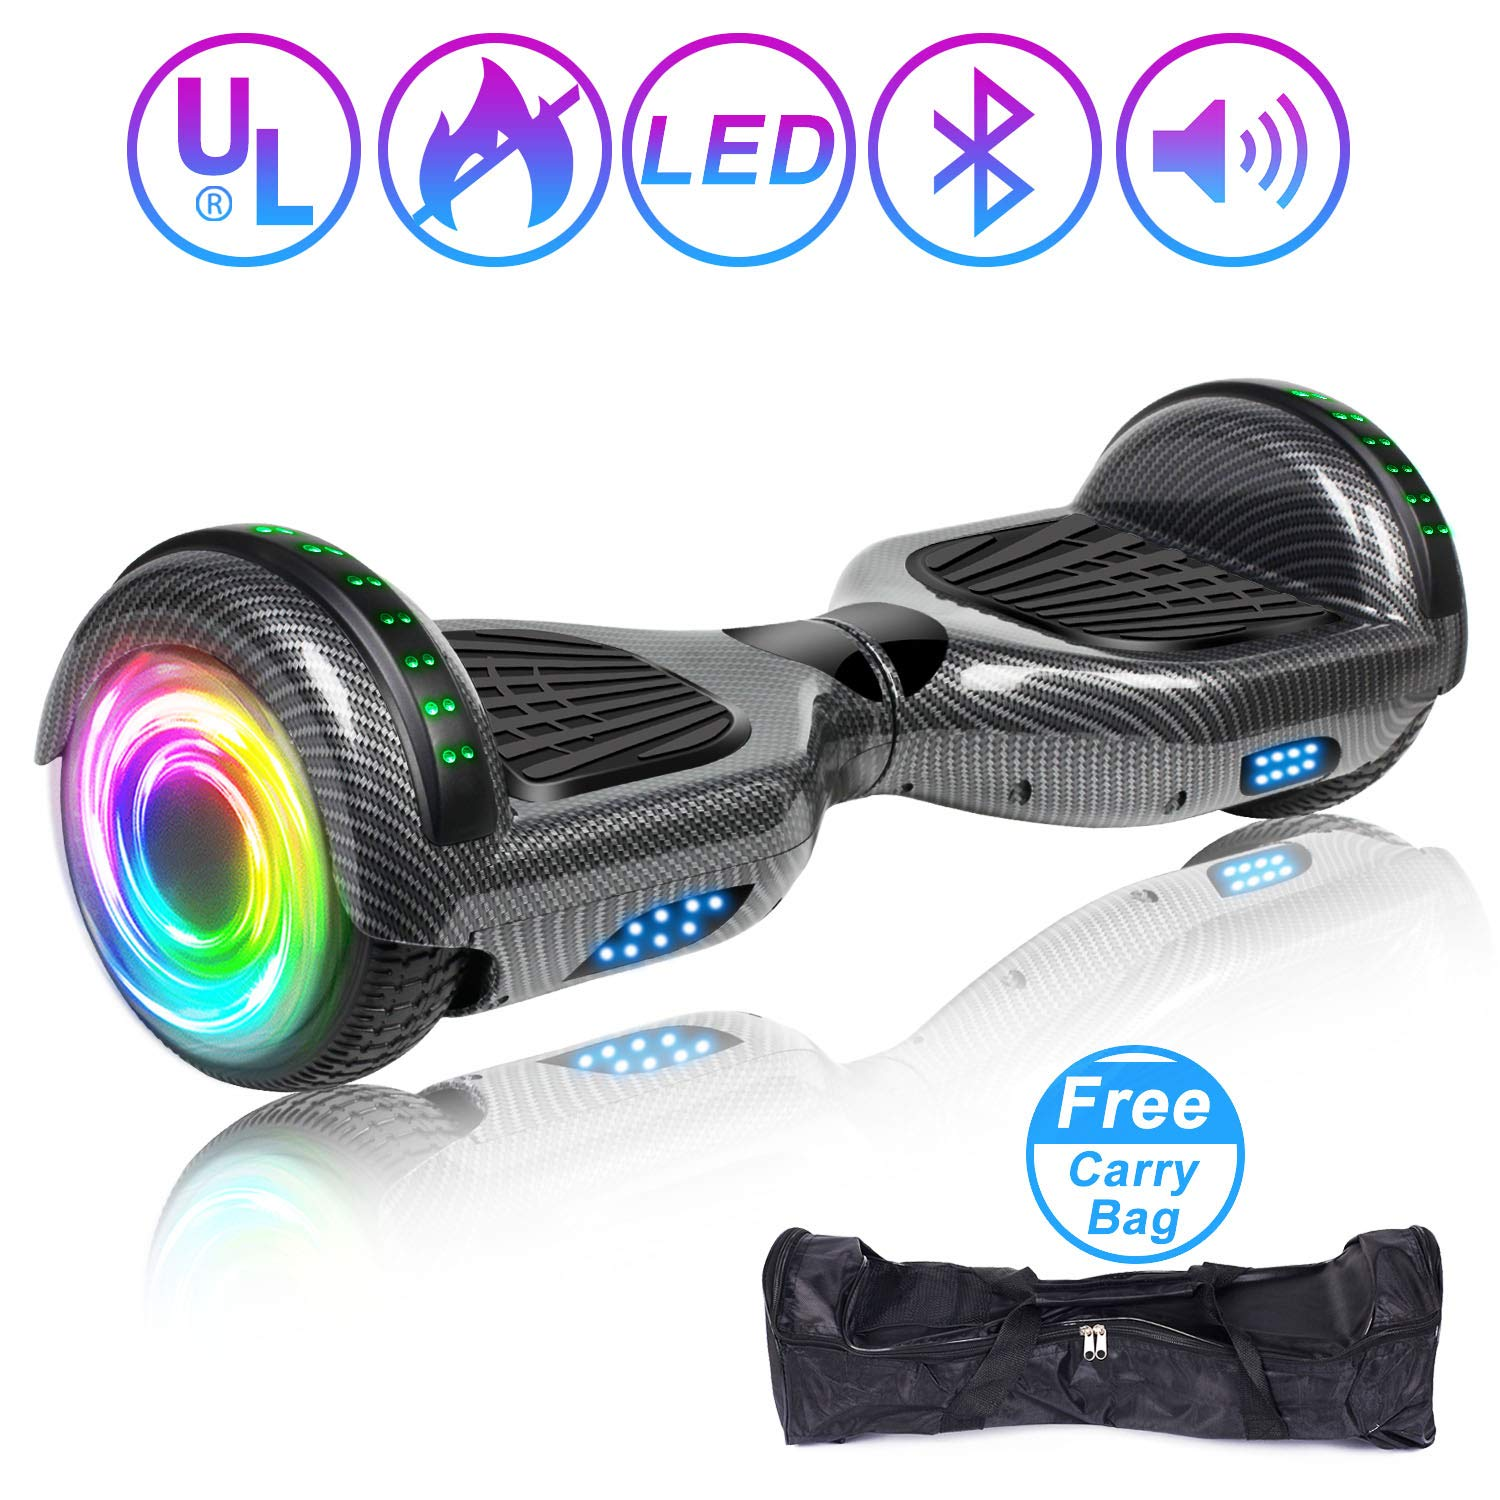 SISIGAD Hoverboard Self Balancing Scooter 6.5'' Two-Wheel Self Balancing Hoverboard with Bluetooth Speaker and LED Lights Electric Scooter for Adult Kids Gift UL 2272 Certified - Carbon Black by SISIGAD (Image #1)